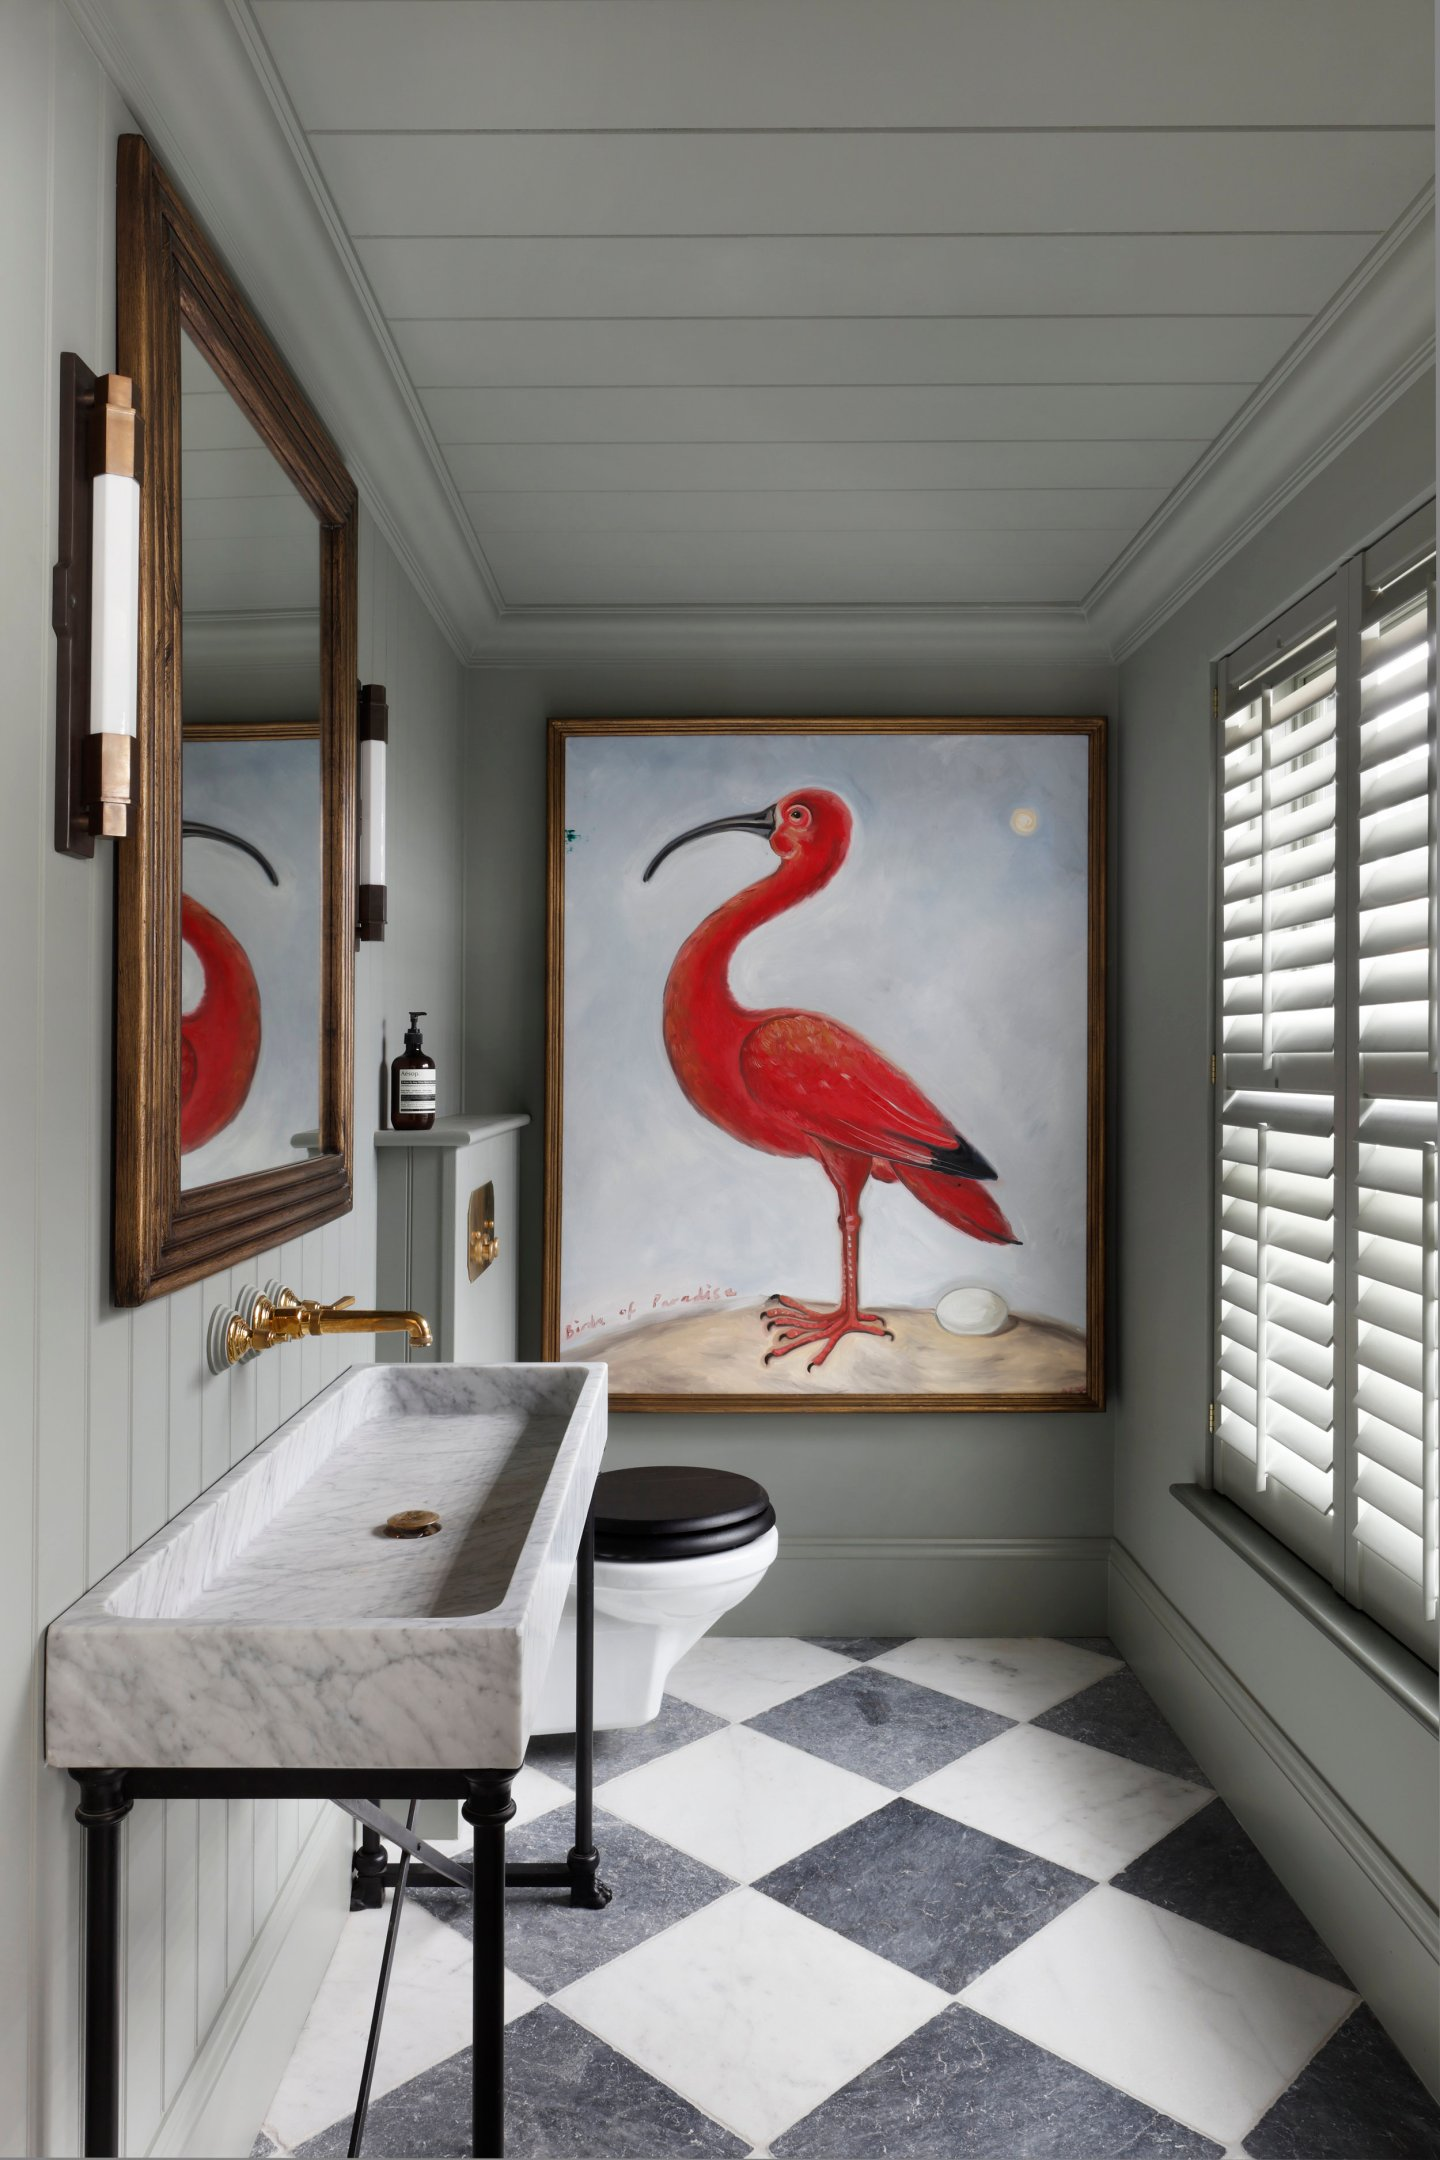 Oversized Wall Art of a Bird hung in the Powder Bathroom